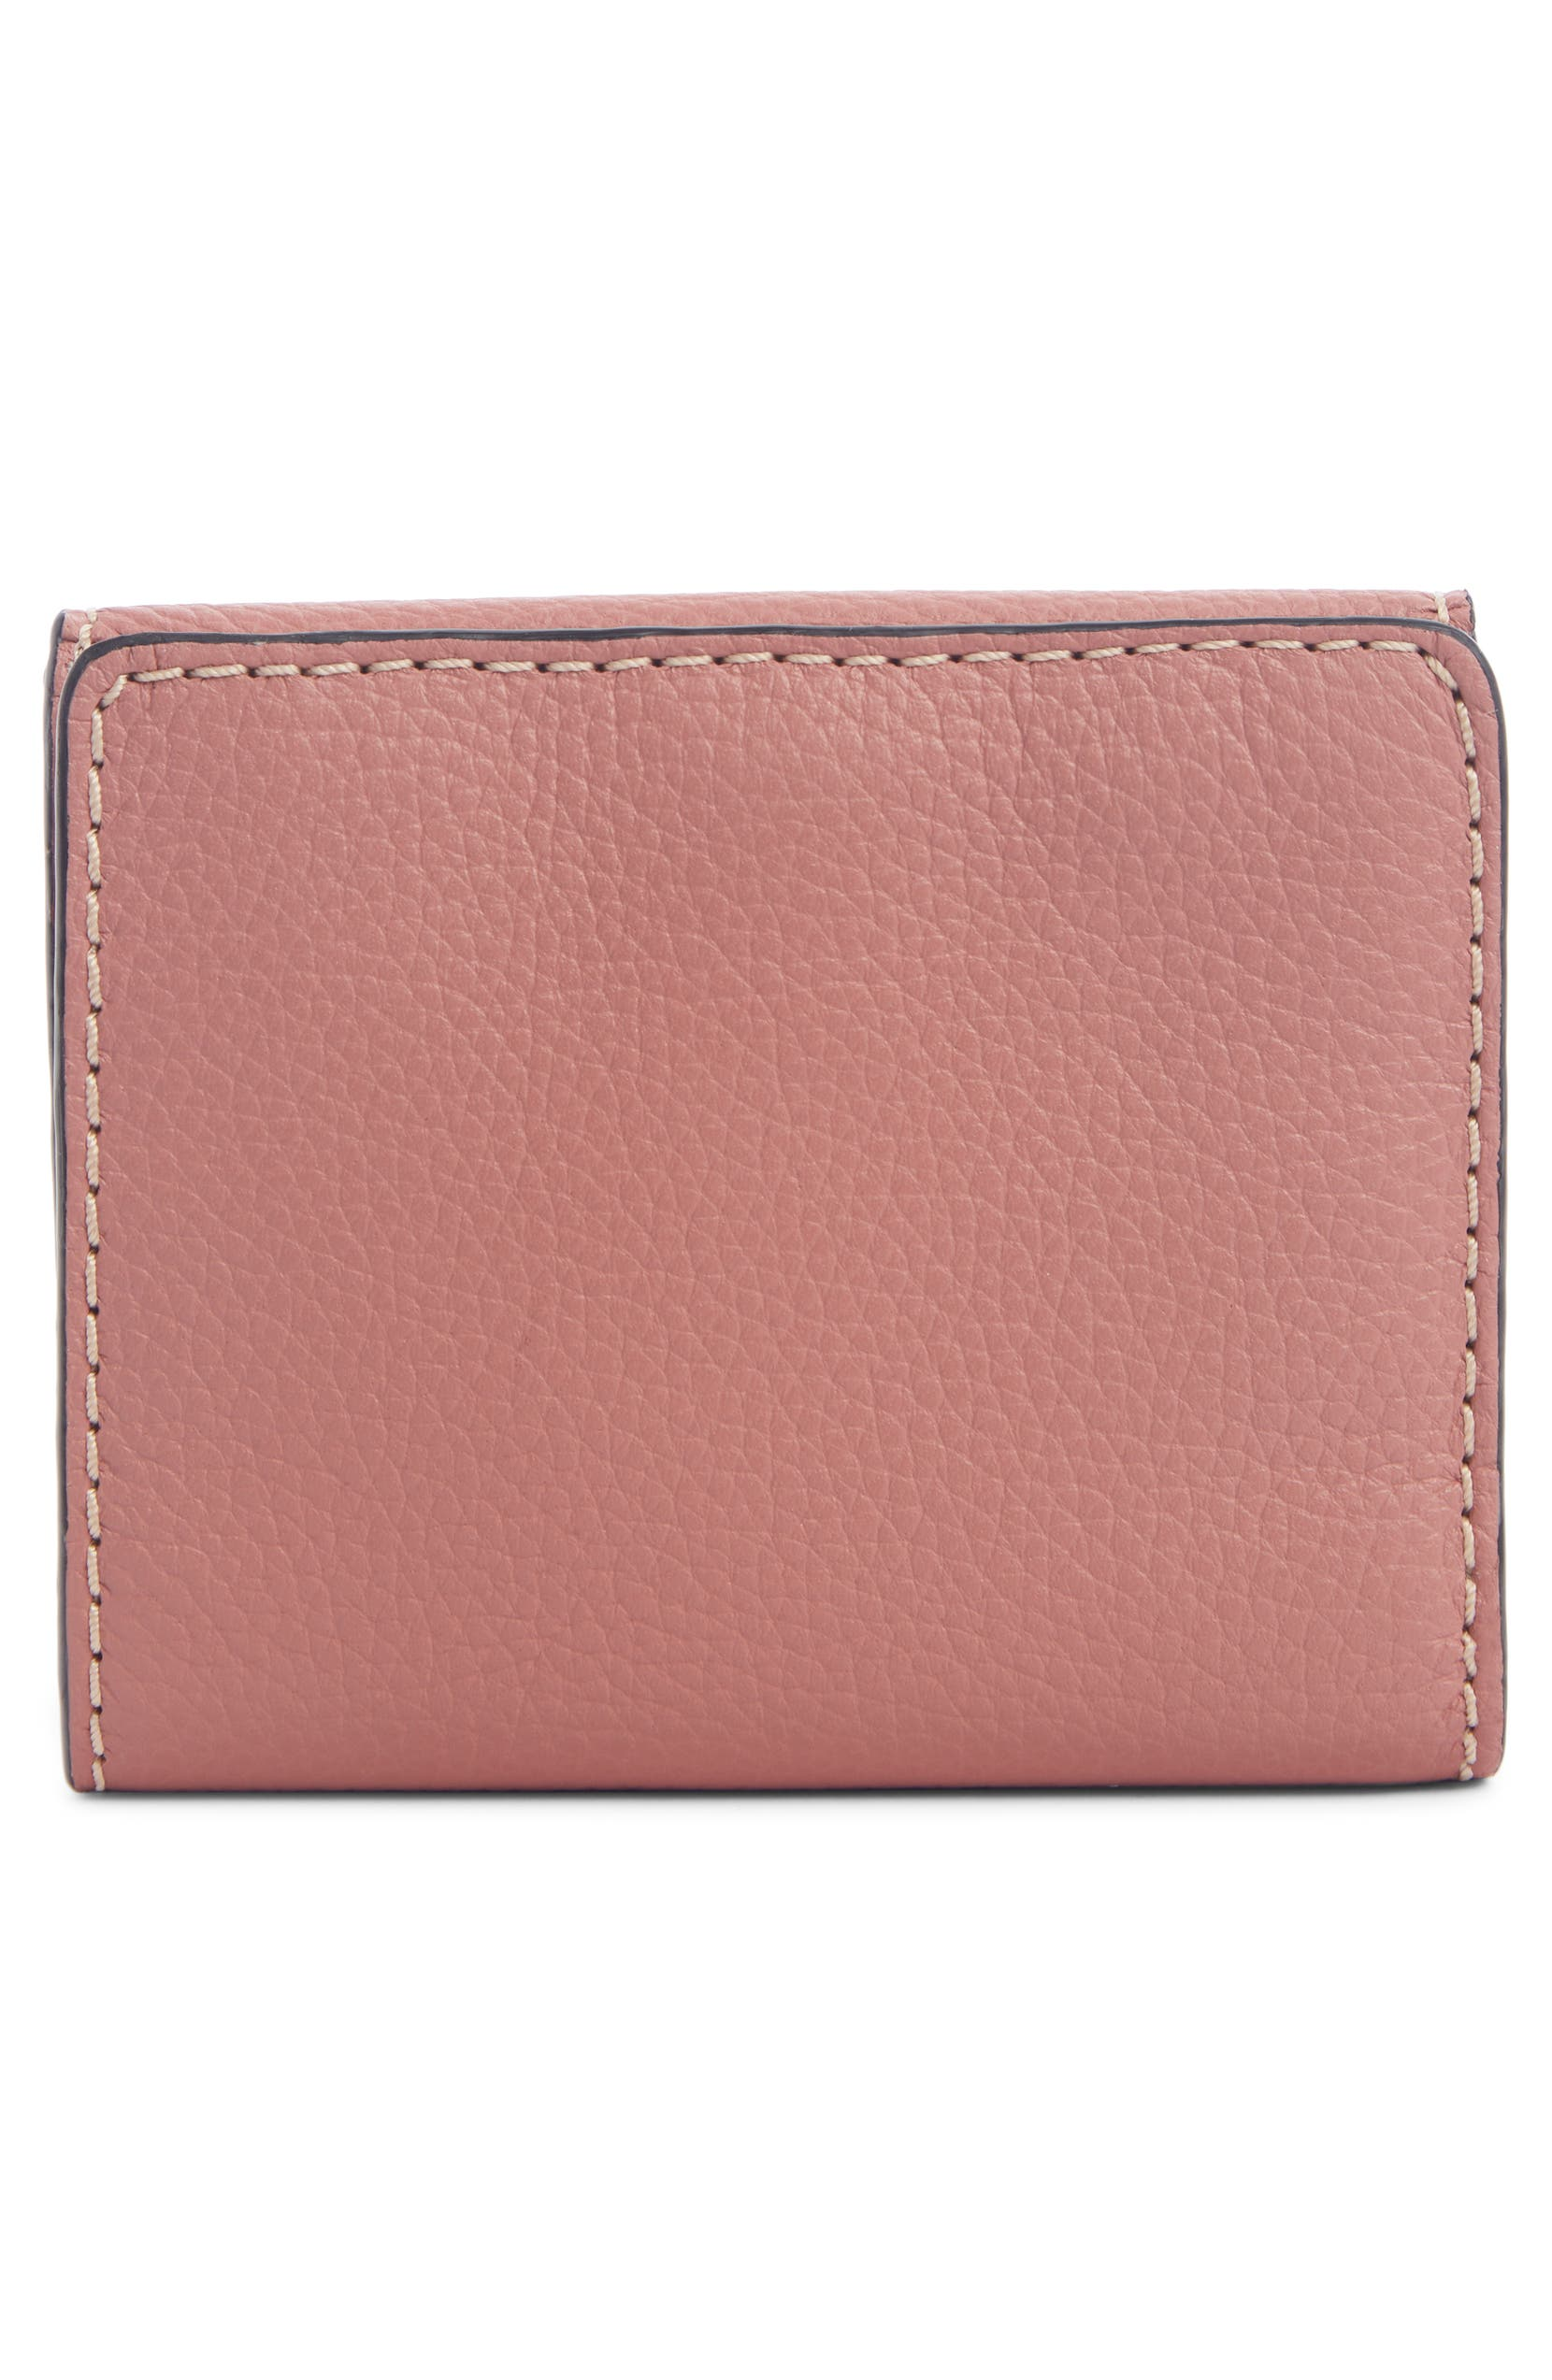 a7e0935d 'Marcie' French Wallet